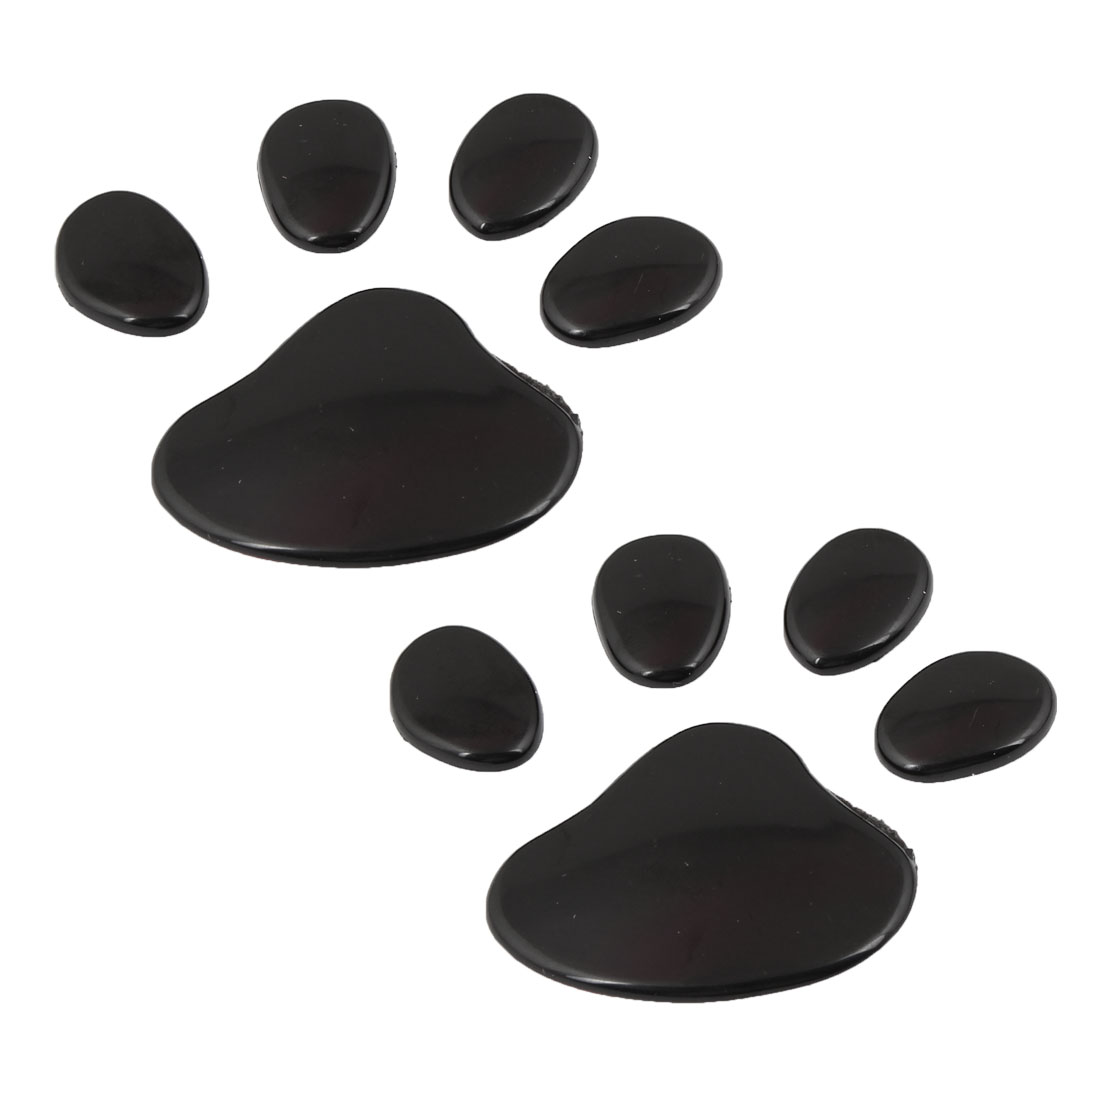 2 Pcs Black Dog Footprint Badge Emblems Sticker for Vehicle Car